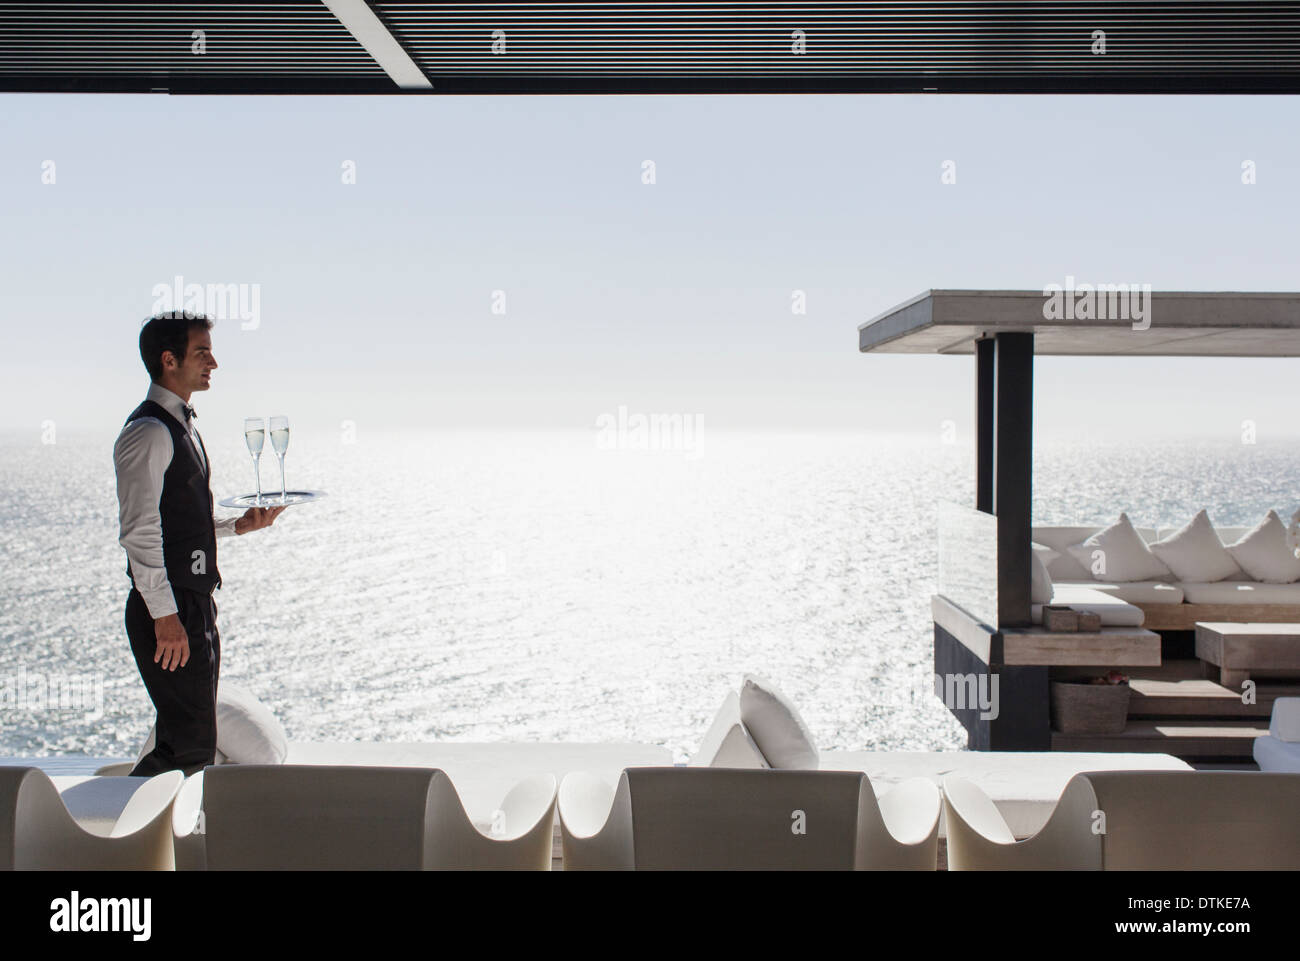 Waiter serving champagne at cabana overlooking ocean - Stock Image